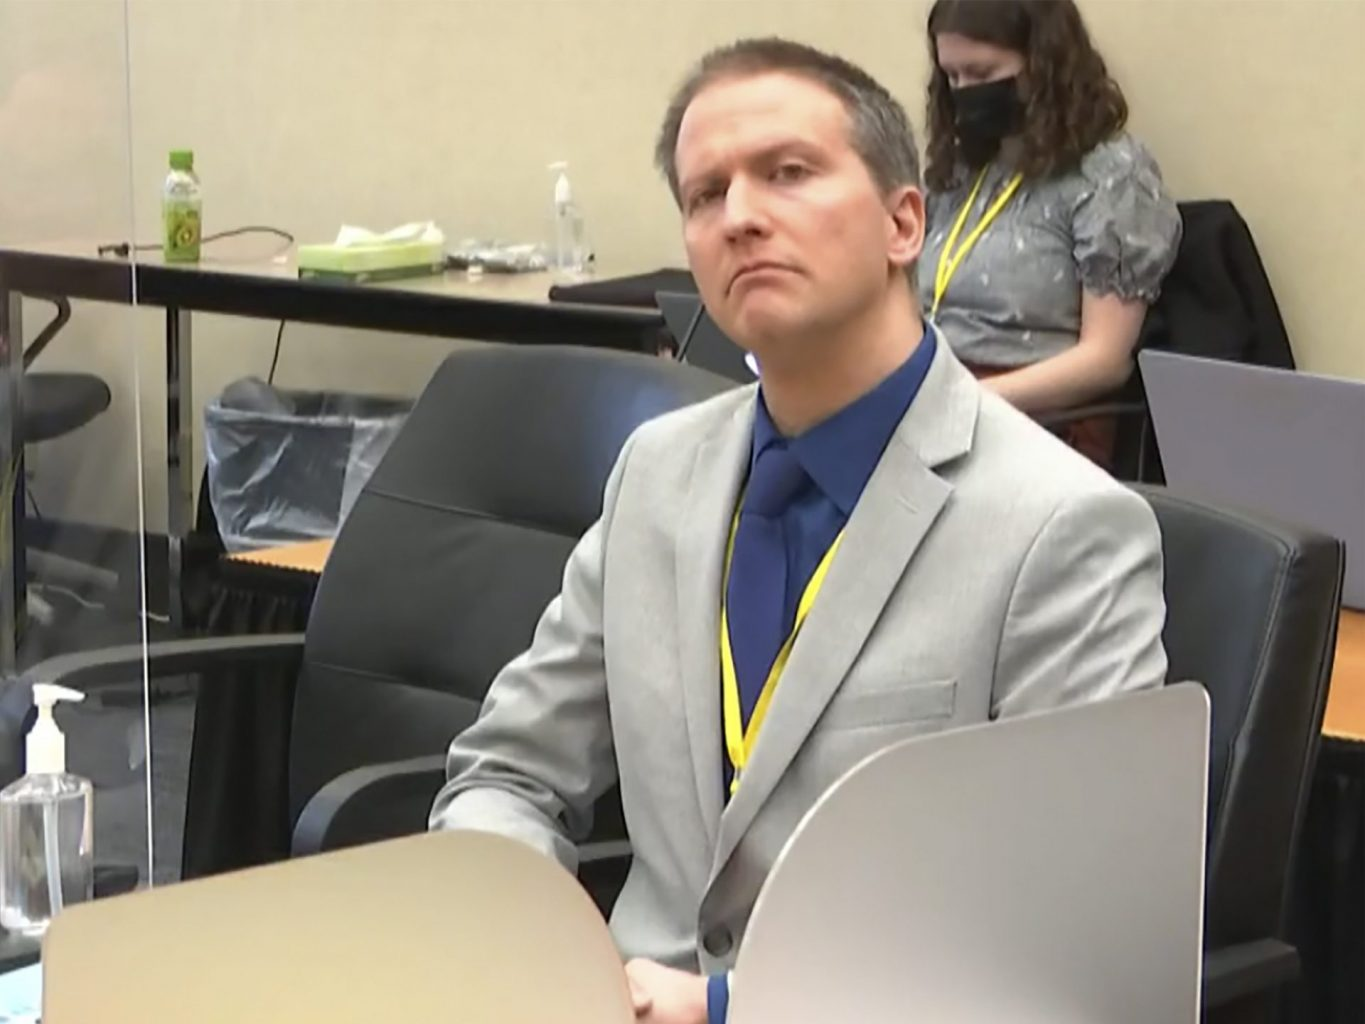 How 12-Man Jury Found Chauvin Guilty Of Manslaughter In George Floyd's Death